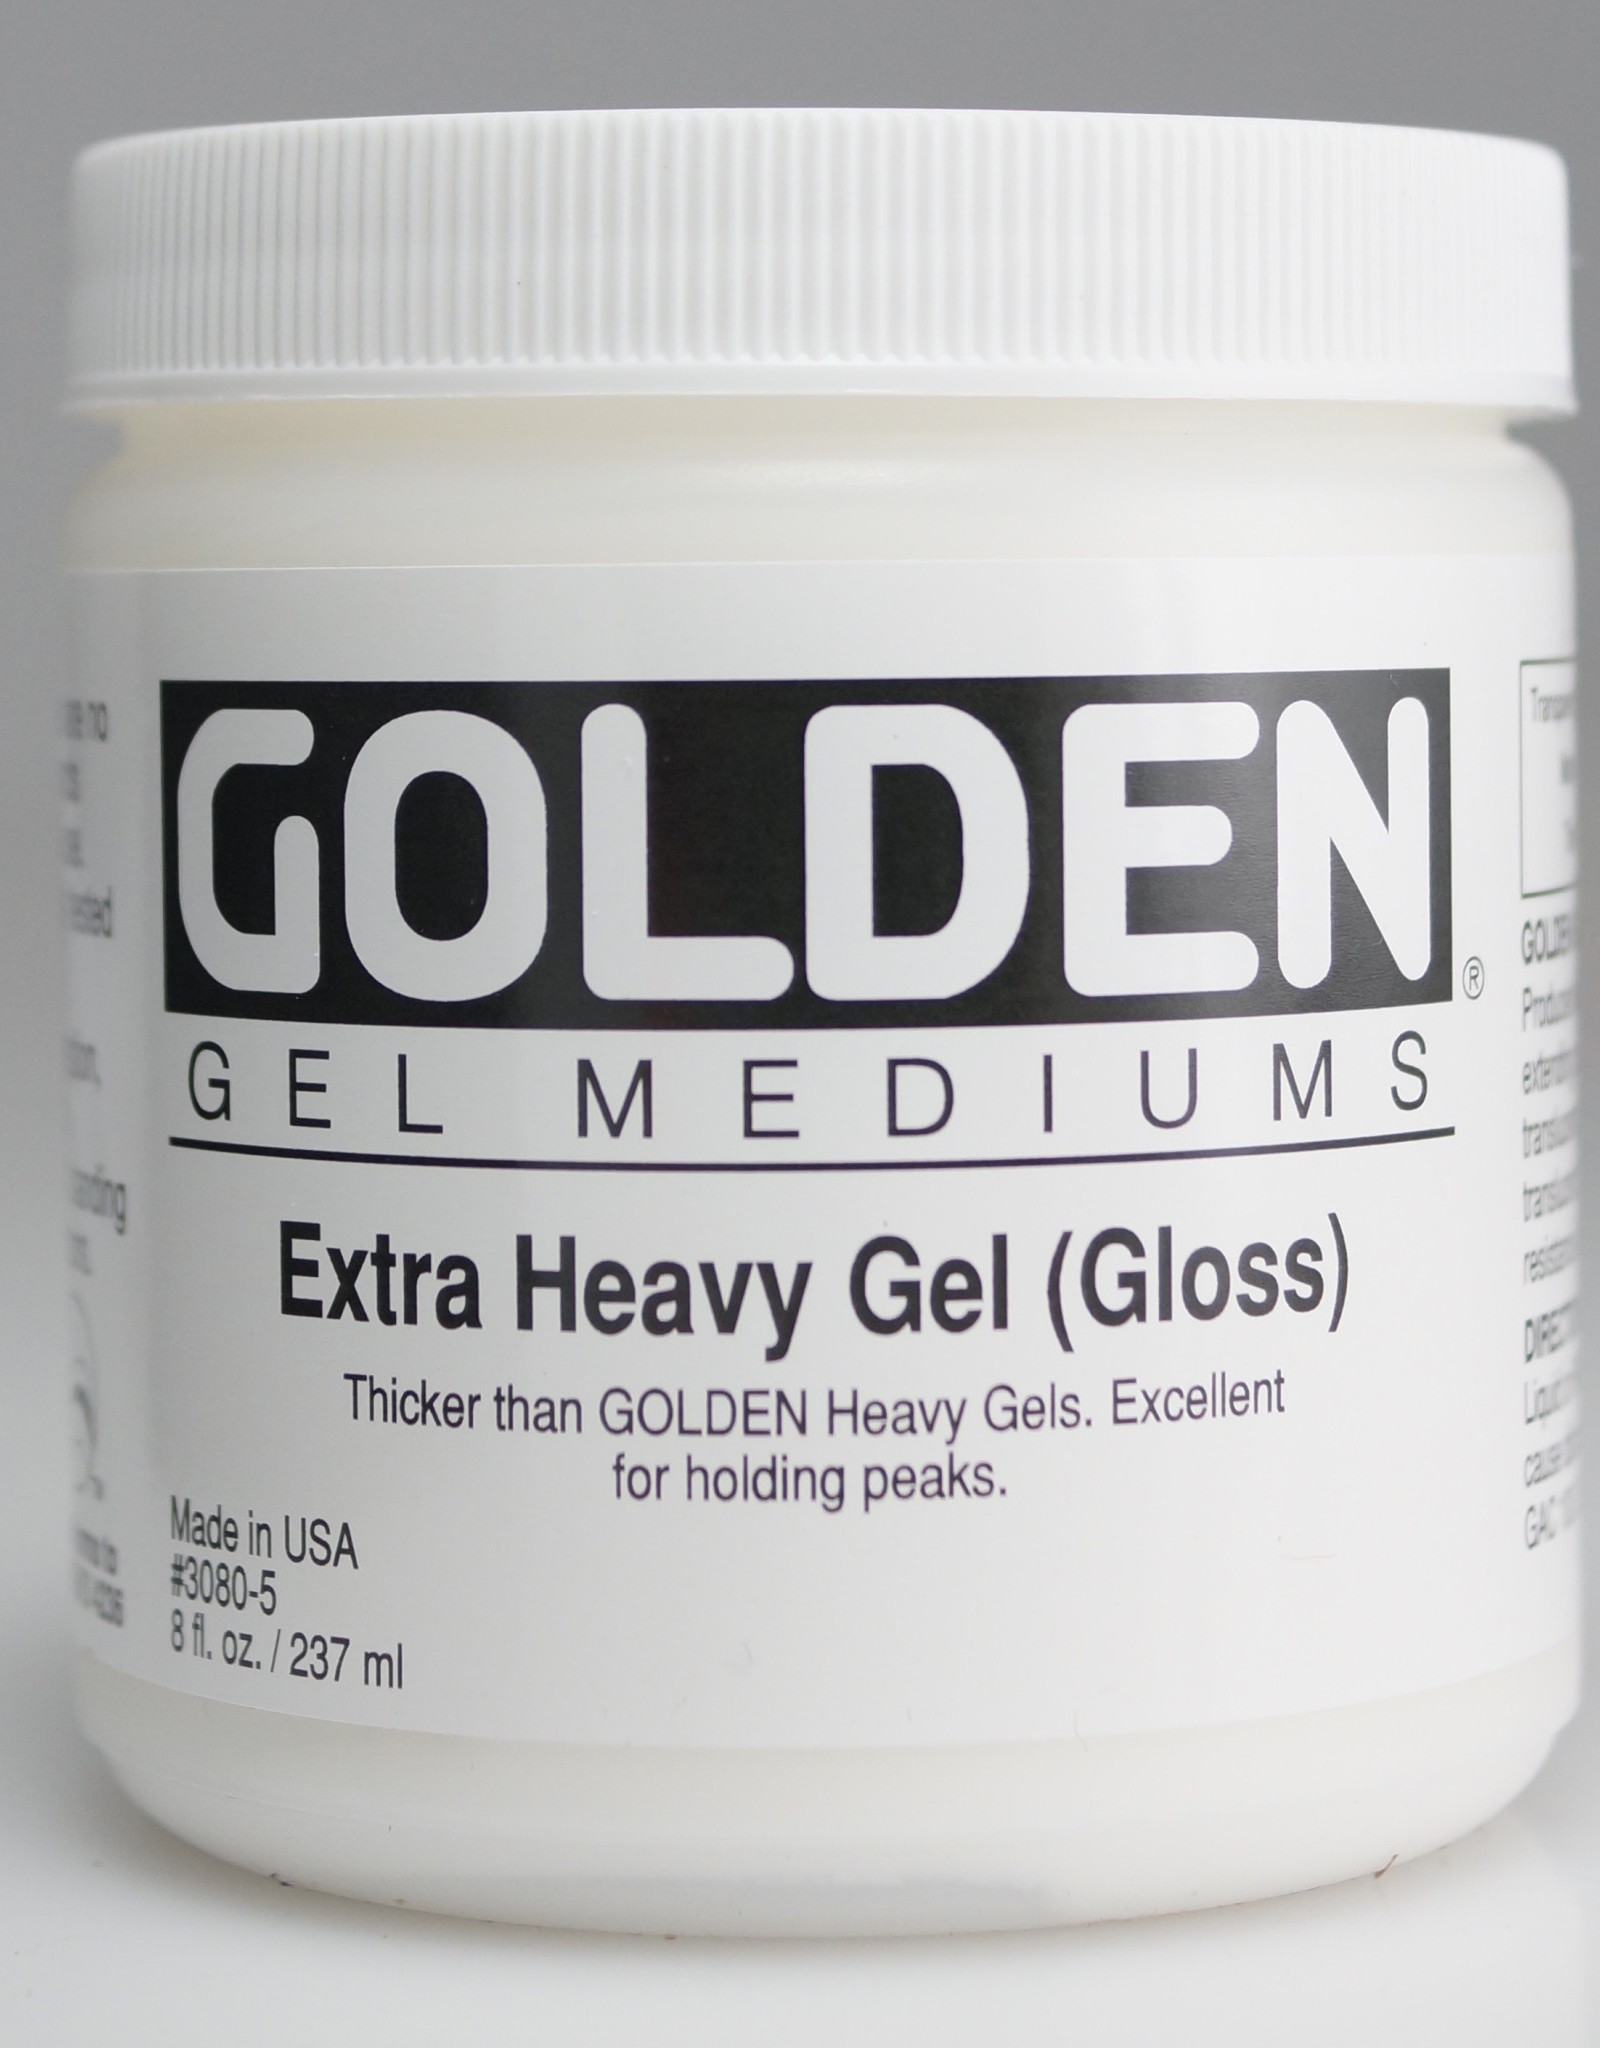 Golden, Extra Heavy Gel Medium, Gloss, 8oz Jar